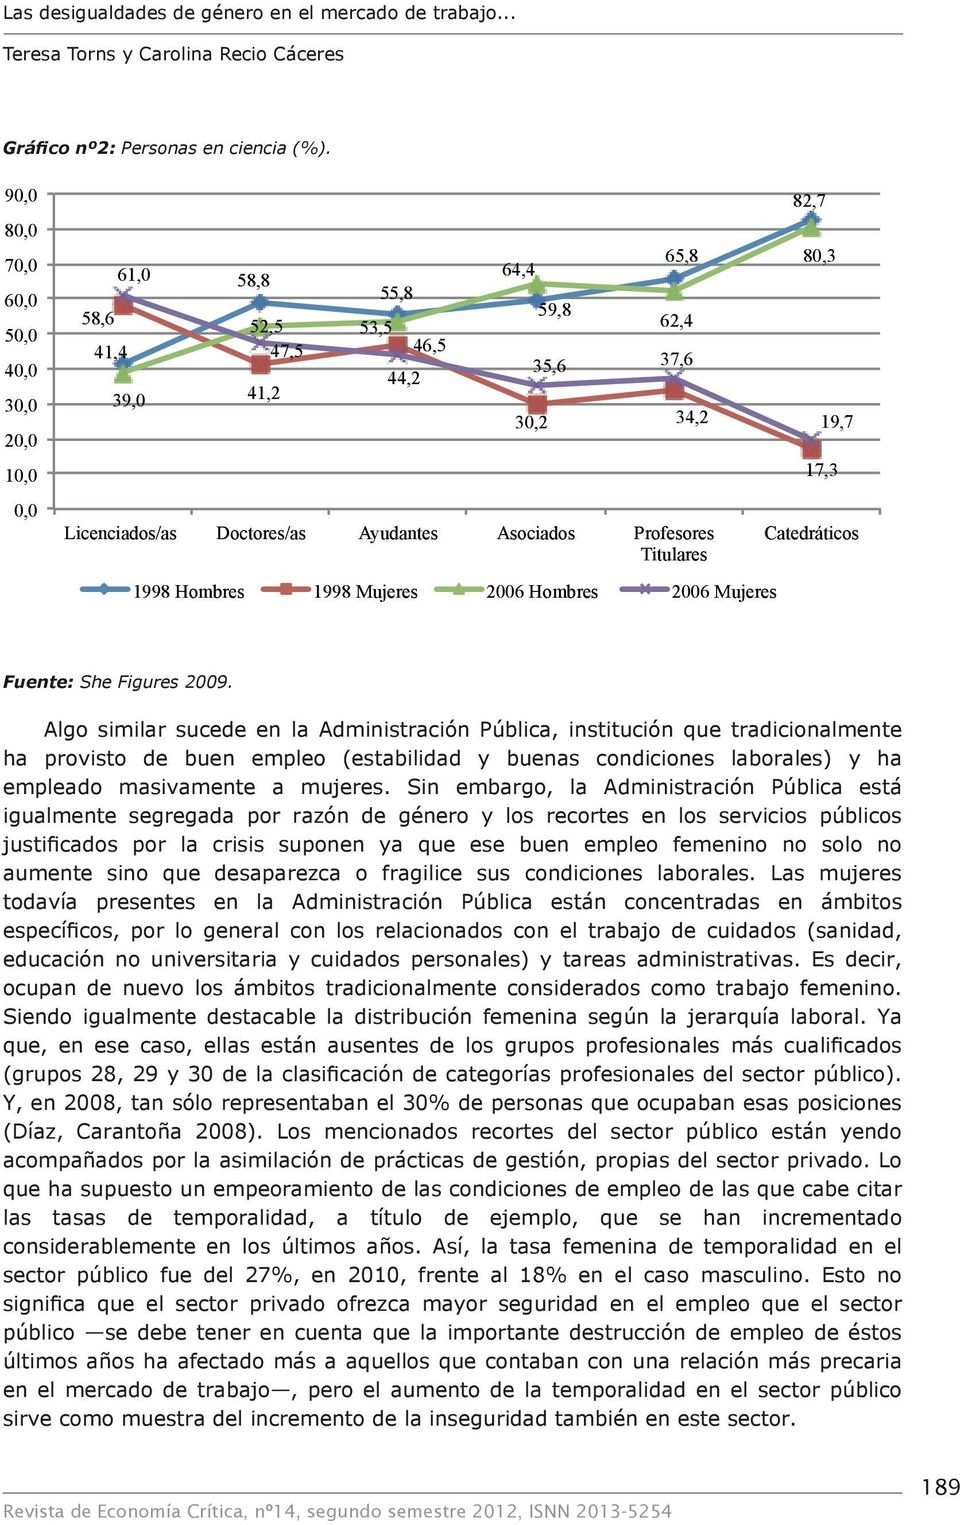 Profesores Titulares 1998 Hombres 1998 Mujeres 2006 Hombres 2006 Mujeres 82,7 80,3 19,7 17,3 Catedráticos Fuente: She Figures 2009.